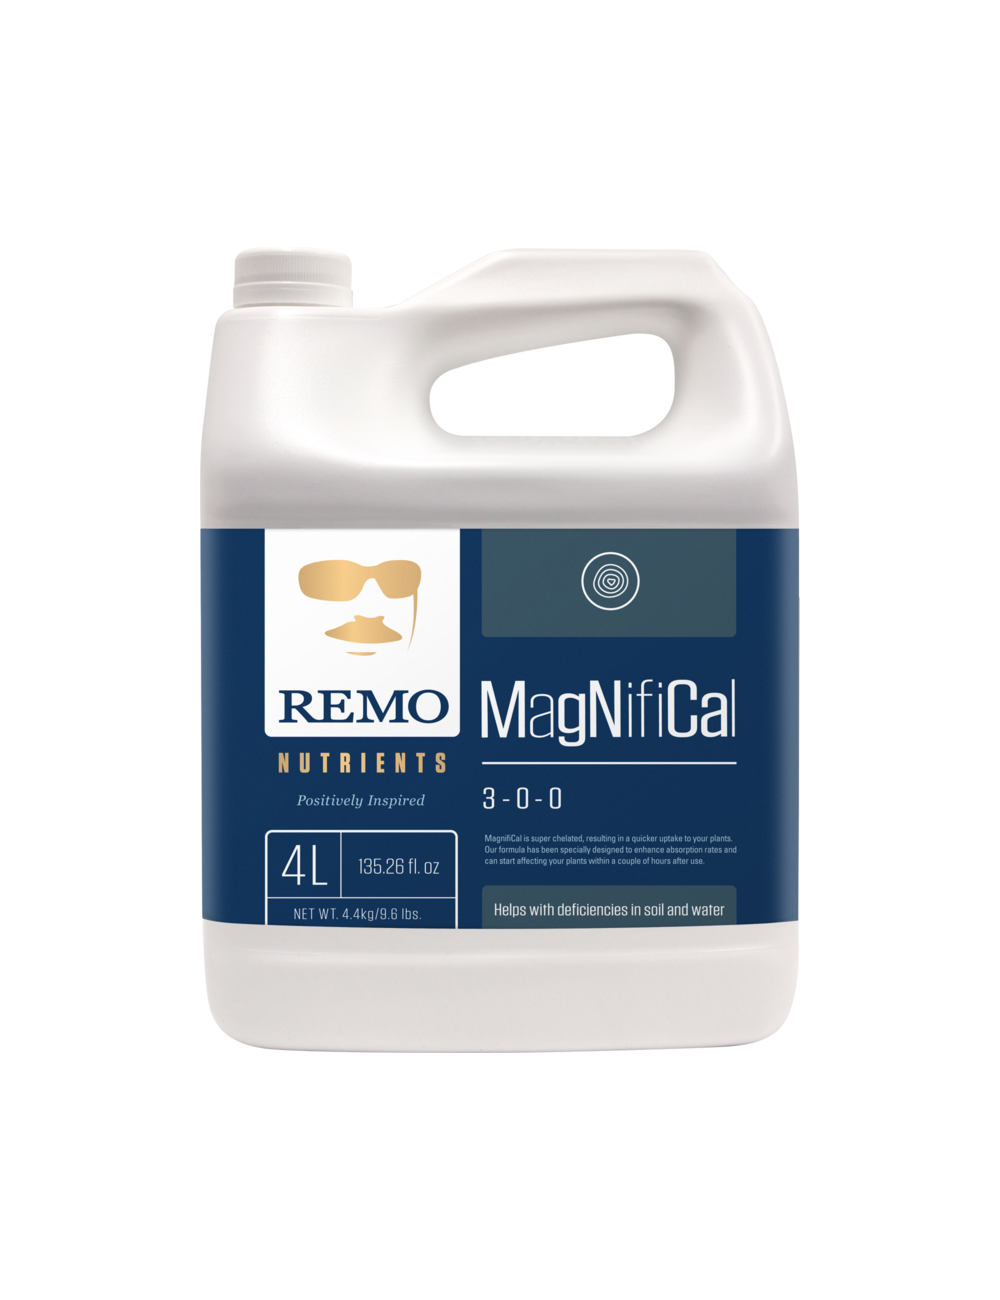 REMO'S MAGNIFICAL 4 LITER